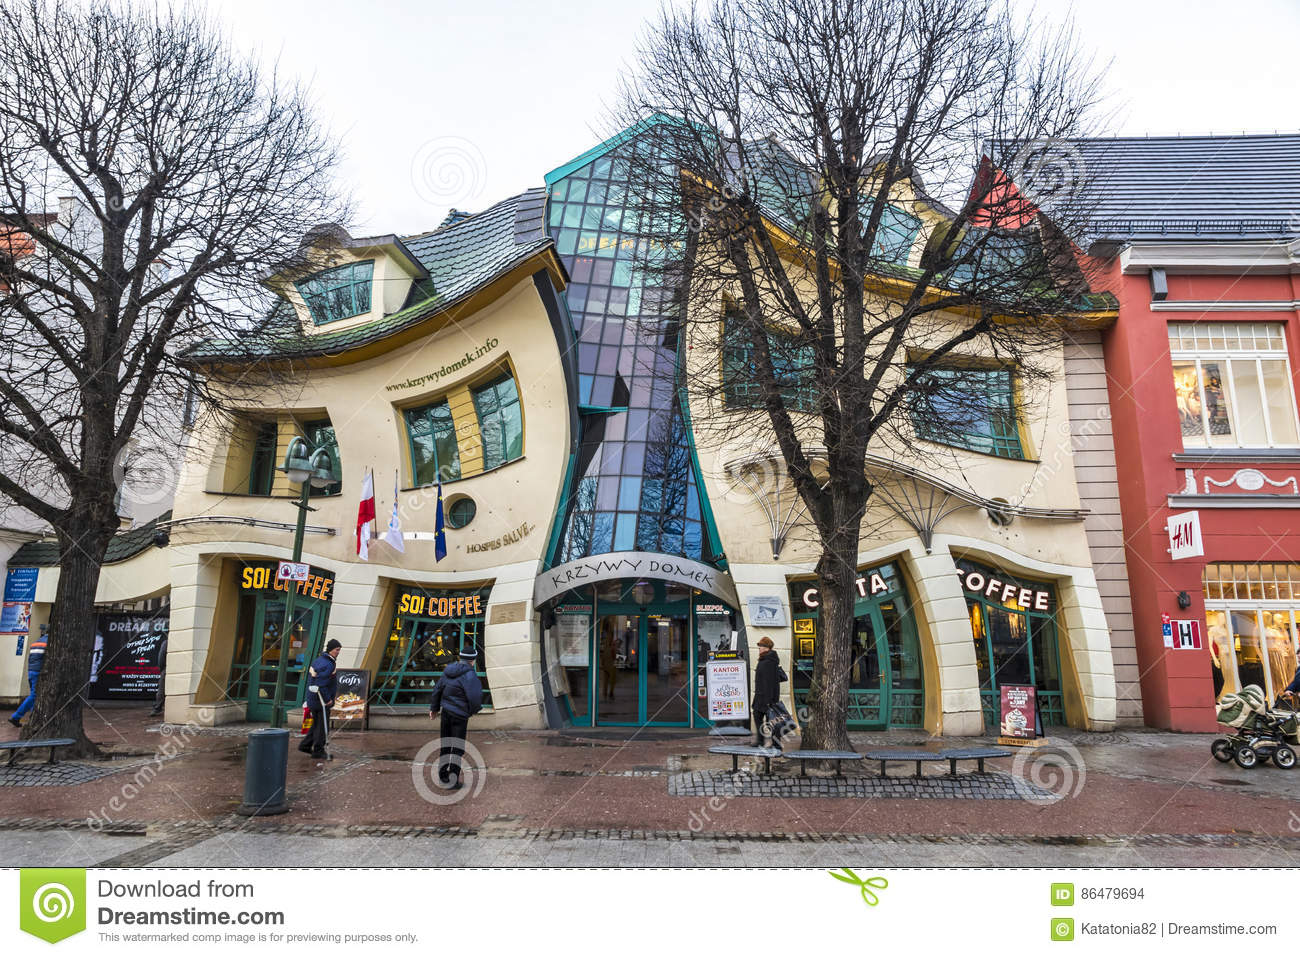 Crooked little house Krzywy Domek in Sopot, Poland